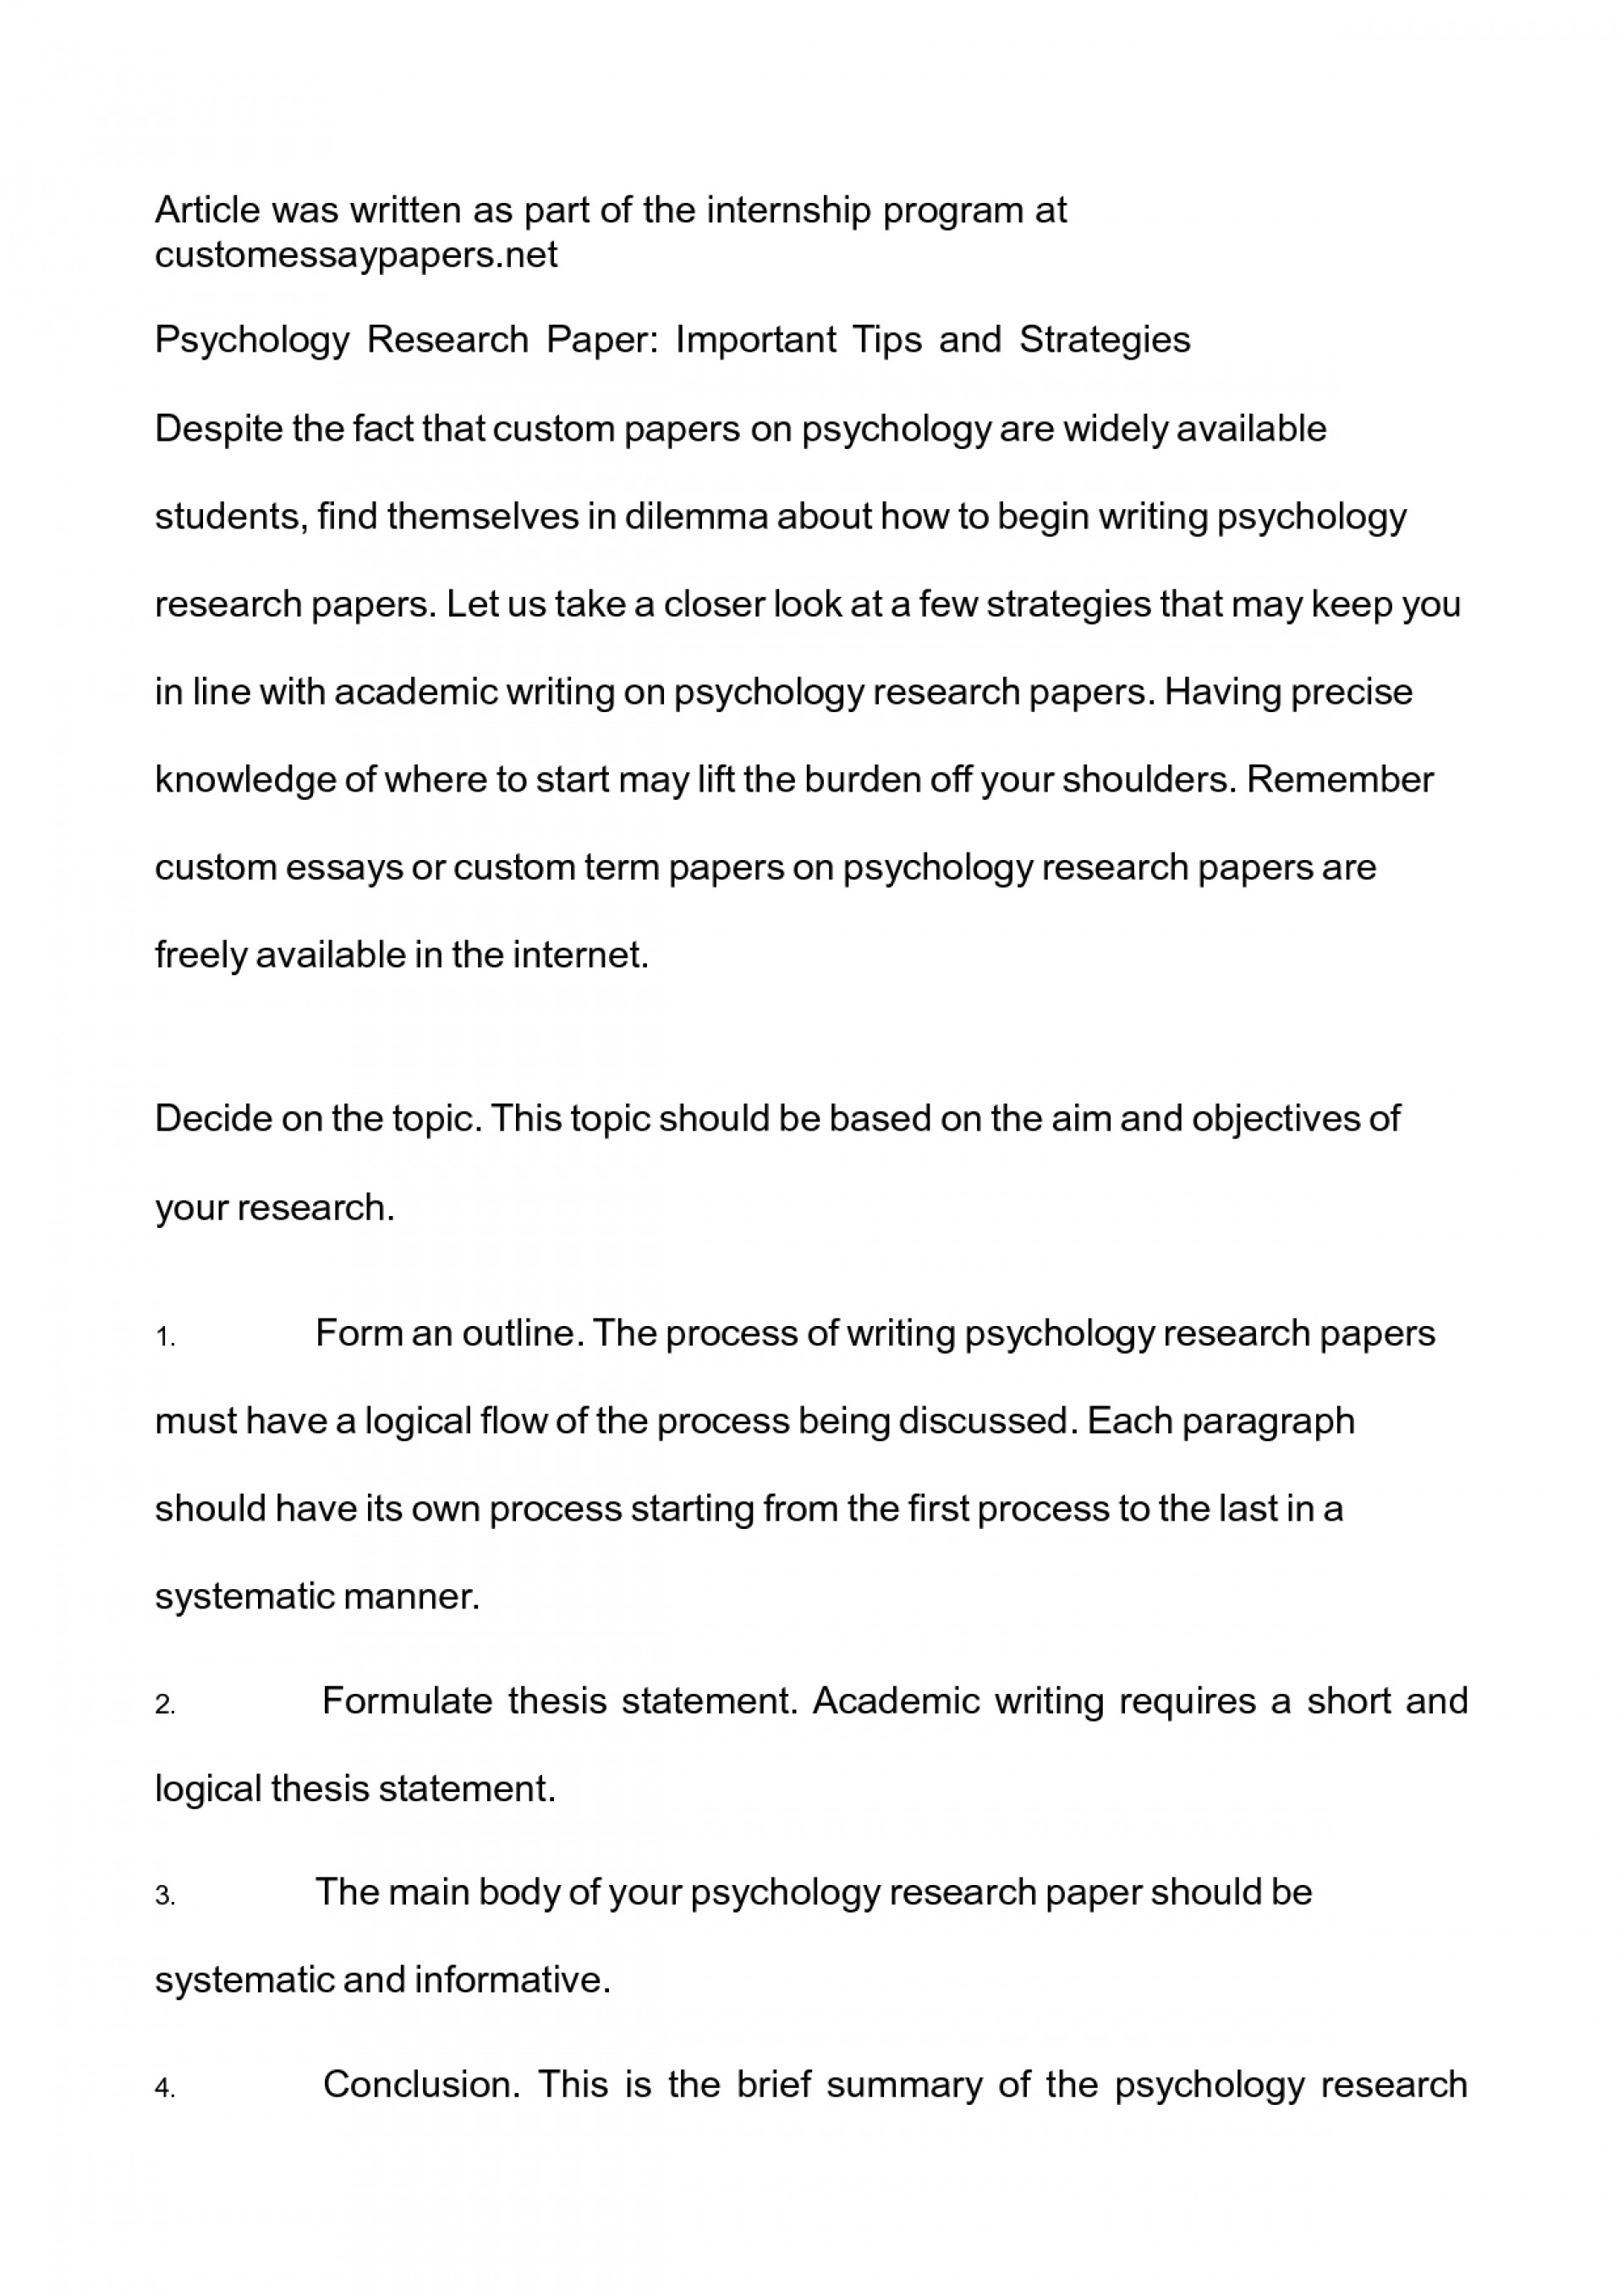 024 Psychology Research Paper Writing Archaicawful Services In Delhi Service Reviews 1920